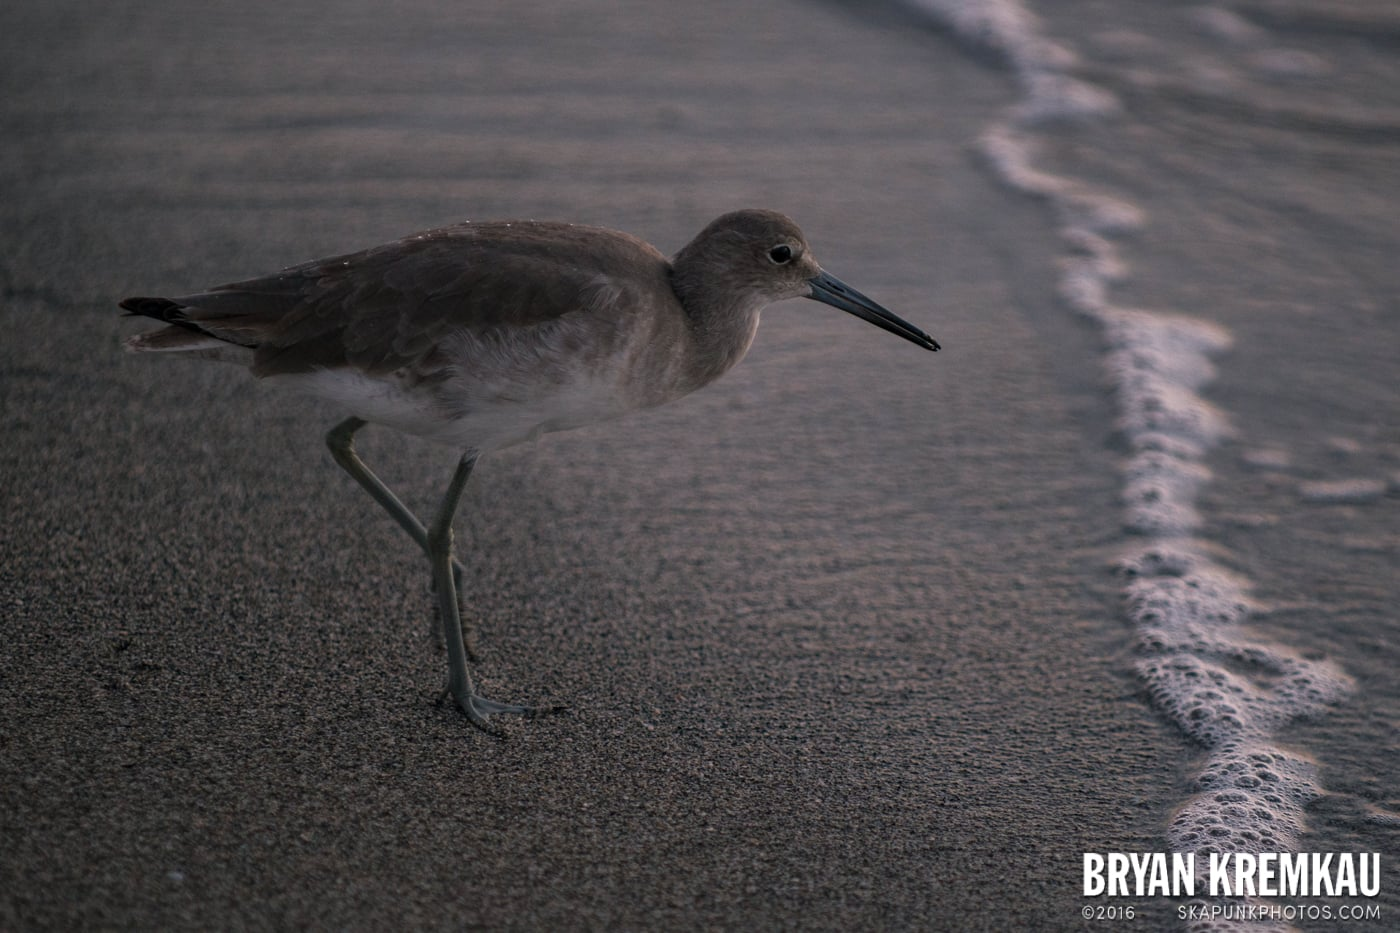 Sunsets, Astrophotography & Birds @ Venice, Florida - 10.25.14 - 11.5.14 (113)